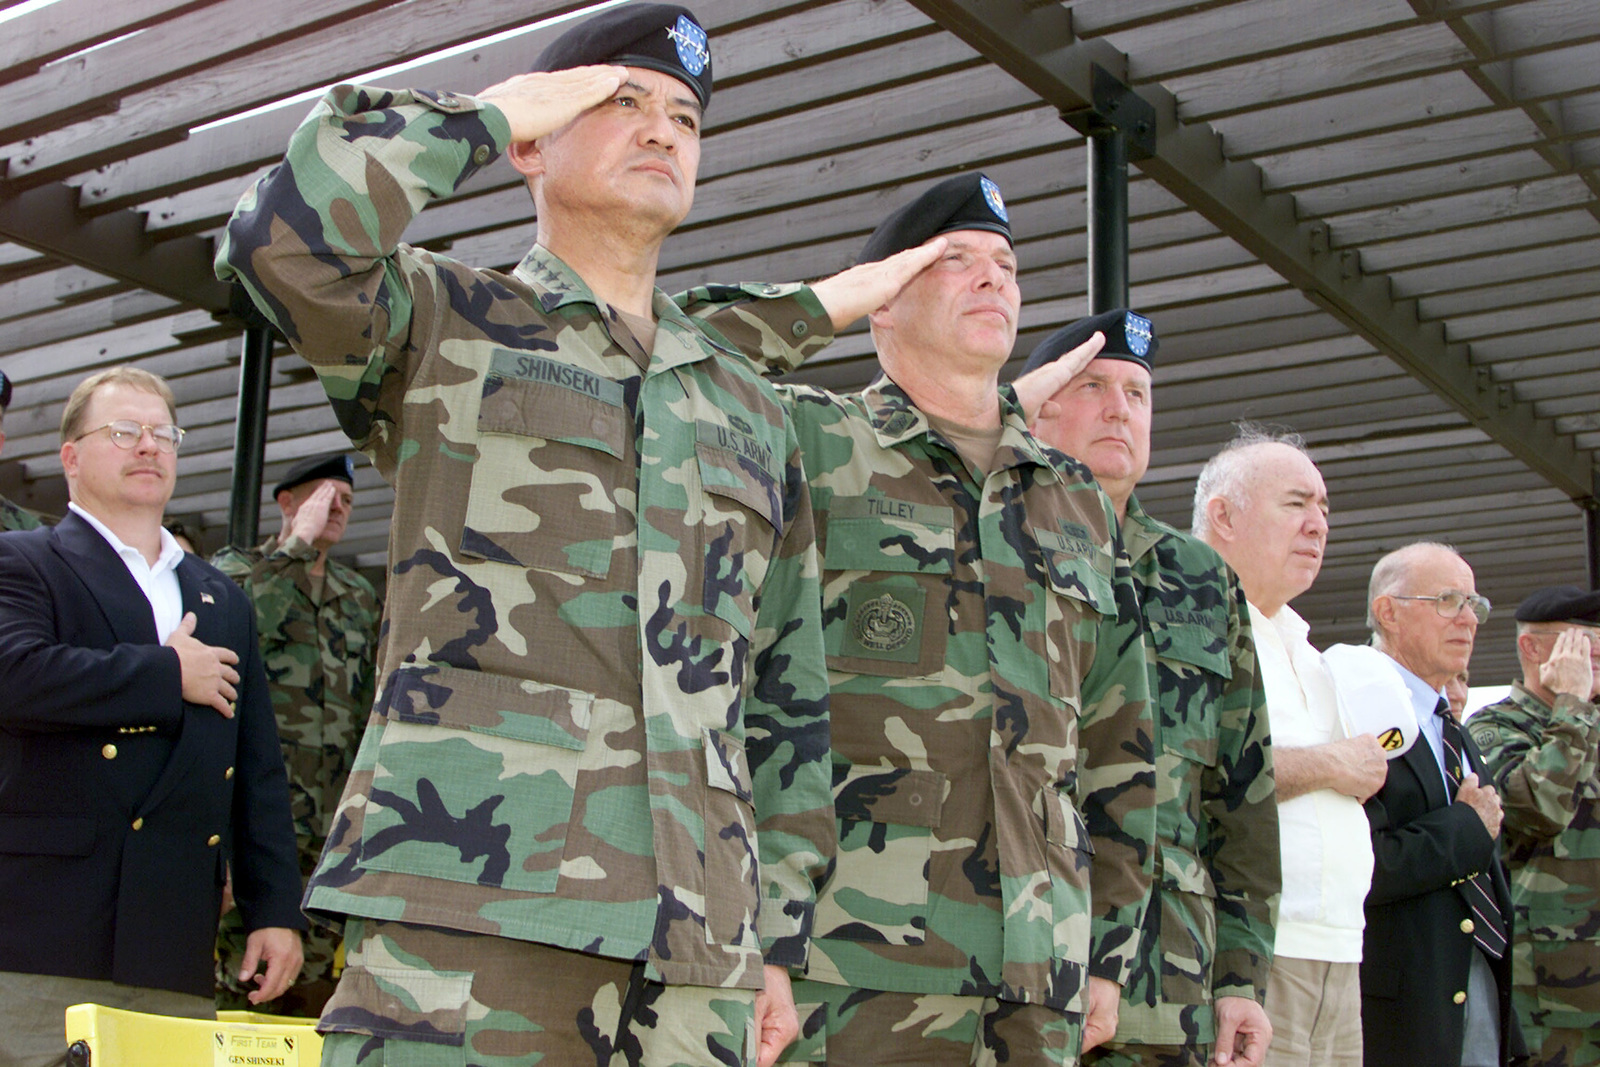 A view of the VIP section during the 1ST Cavalry Divisions Change of Command Ceremony at Fort Hood, Texas (TX). Pictured left-to-right are US Army (USA) General (GEN) Erik K. Shinseki, USA CHIEF-of-STAFF; USA Command Sergeant Major of the Army (CSMA) Jack L. Tilley; USA GEN John N. Abrams, Commanding General, Training and Doctrine Command (TRADOC); USA GEN (Retired) Richard E. Cavazos, and GEN (Retired) Robert M. Shoemaker